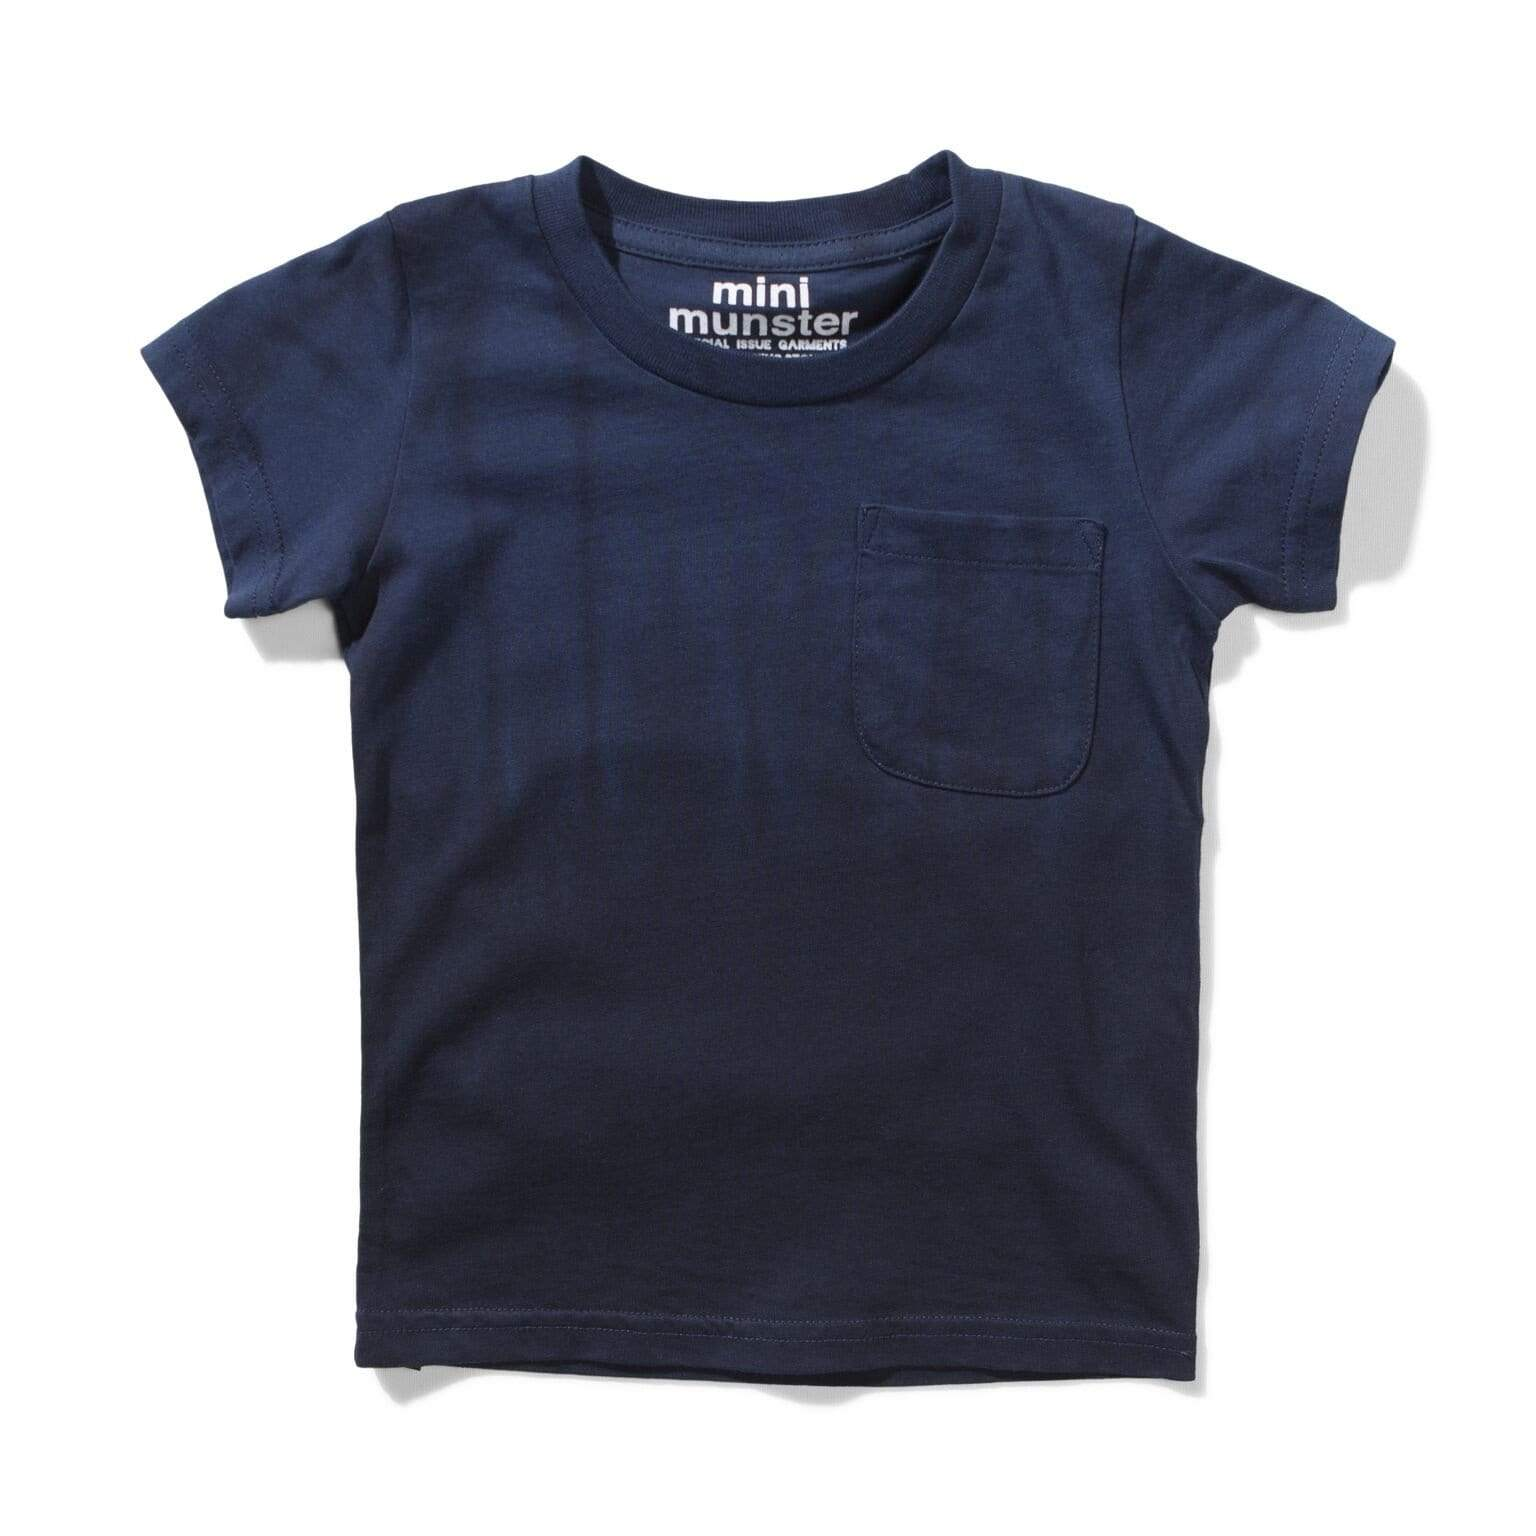 Munster T Shirt Rocket Tee - Midnight Dip Dye